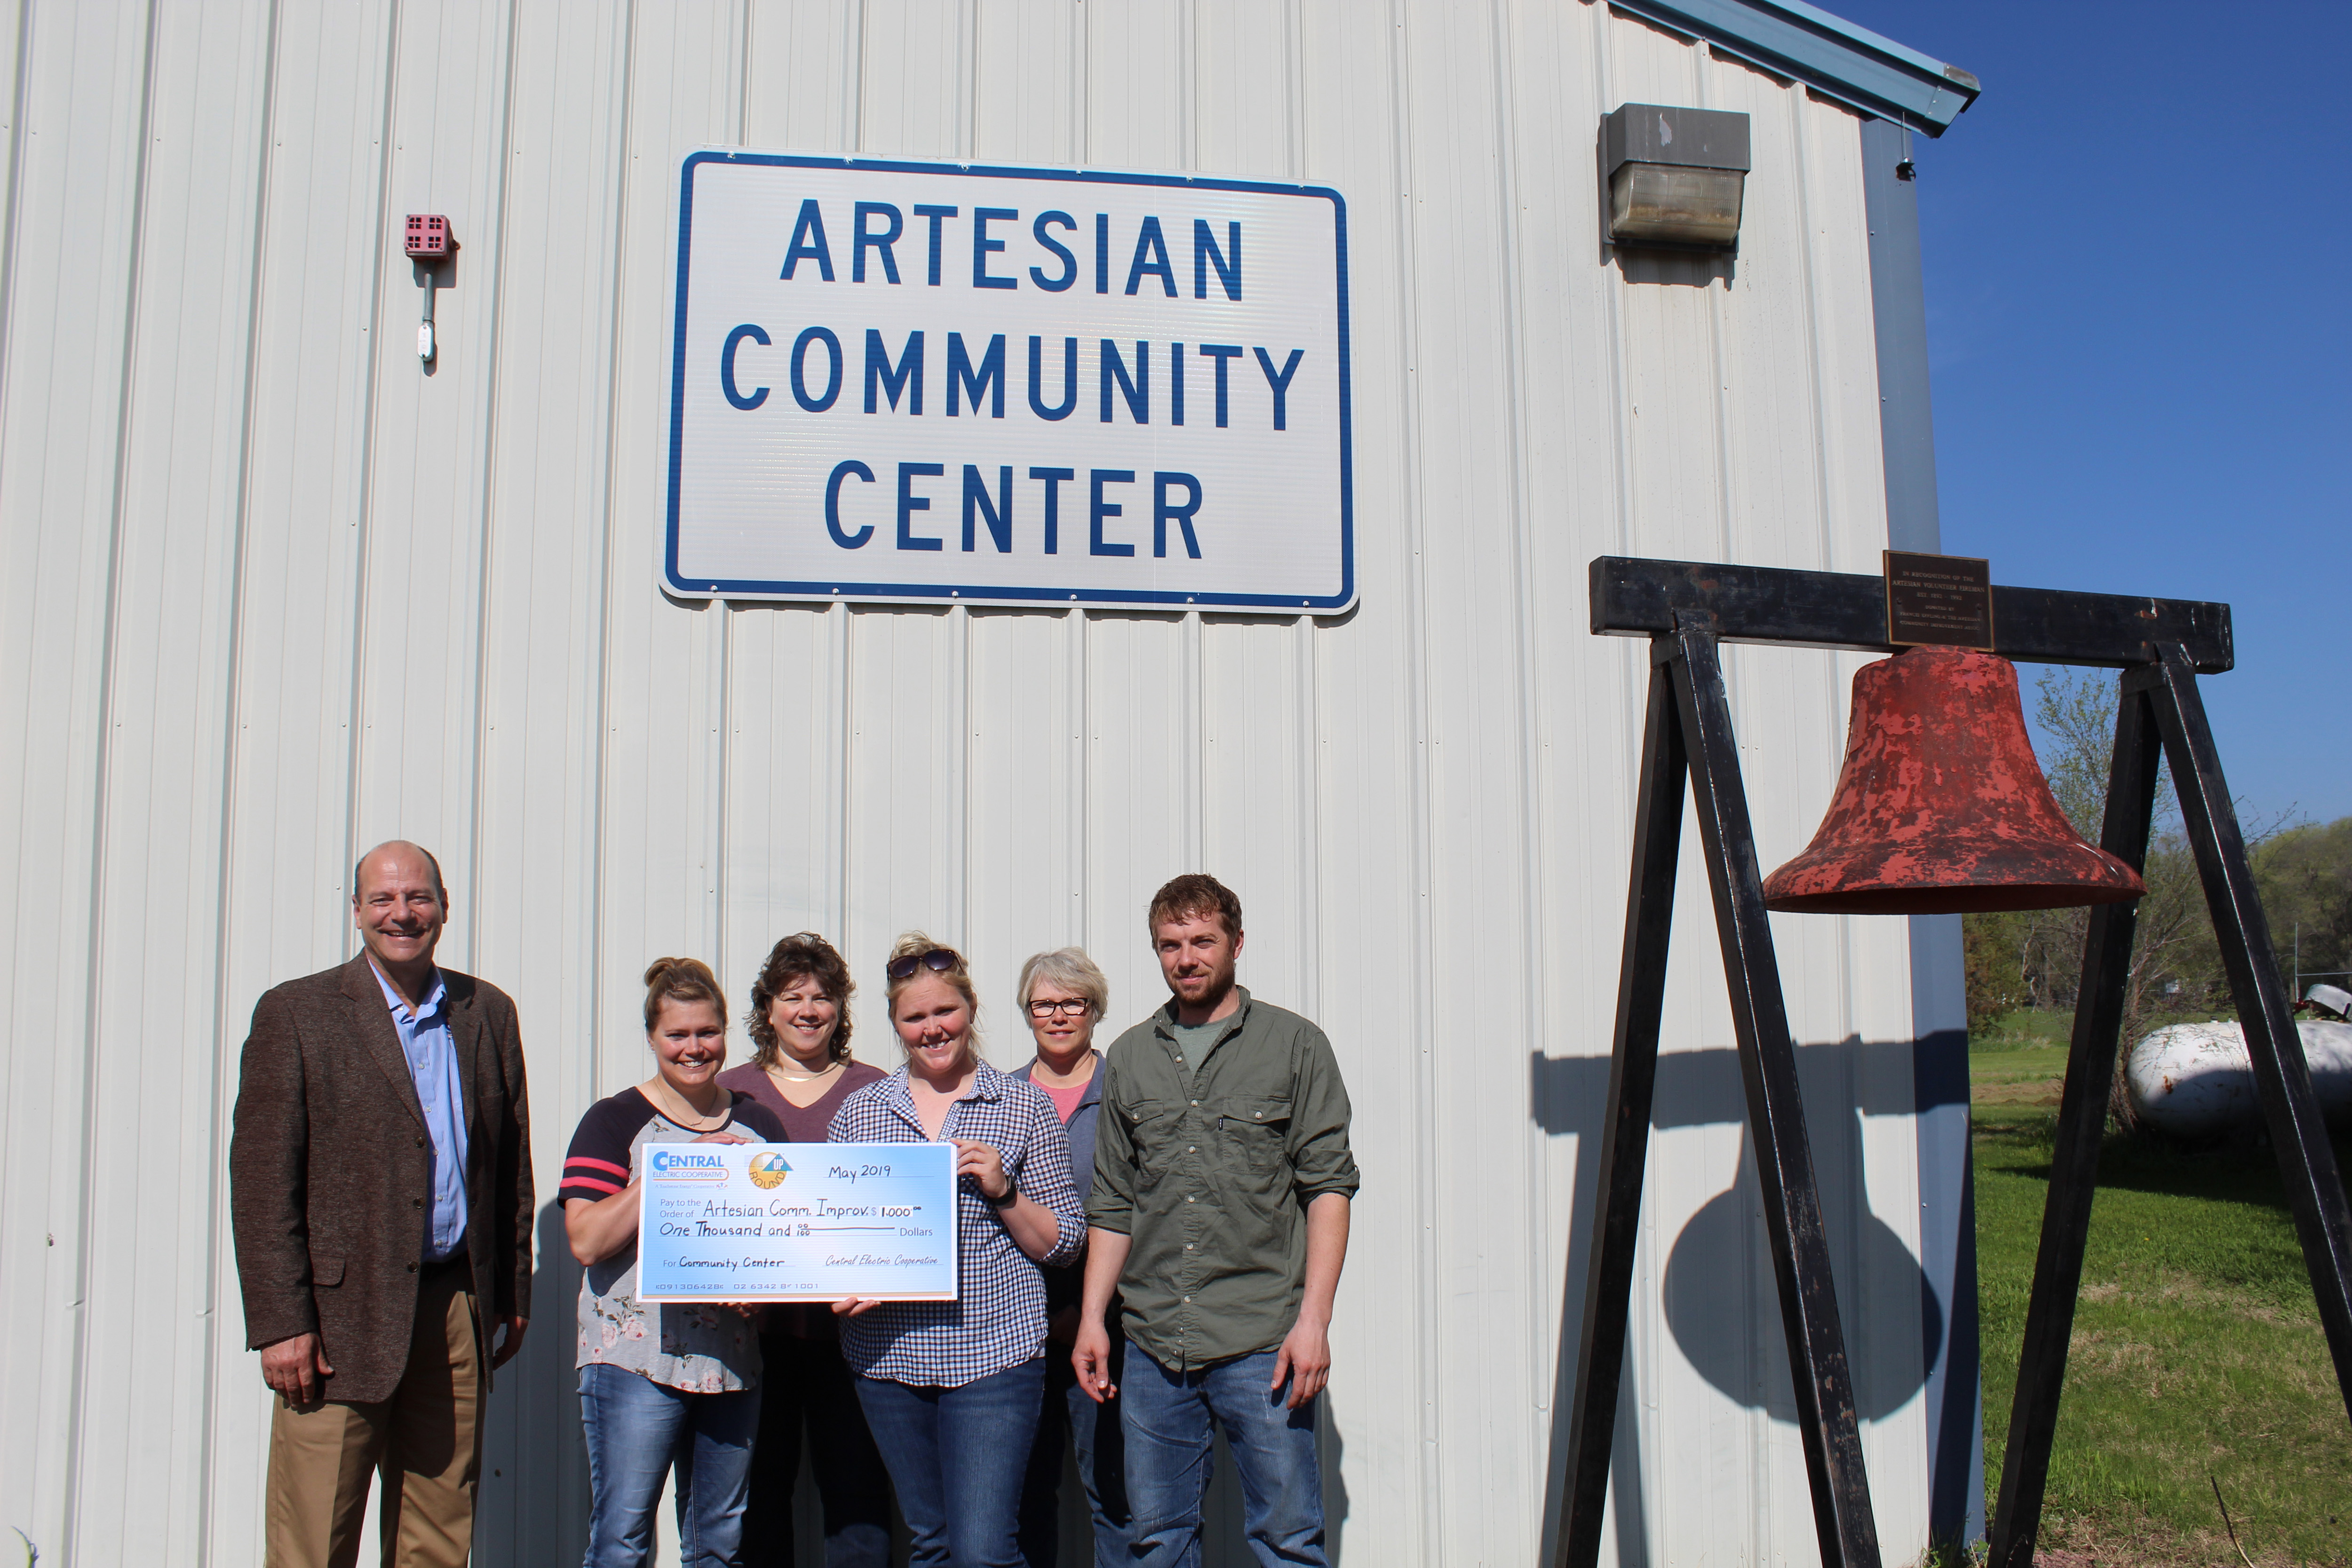 Artesian Community Center